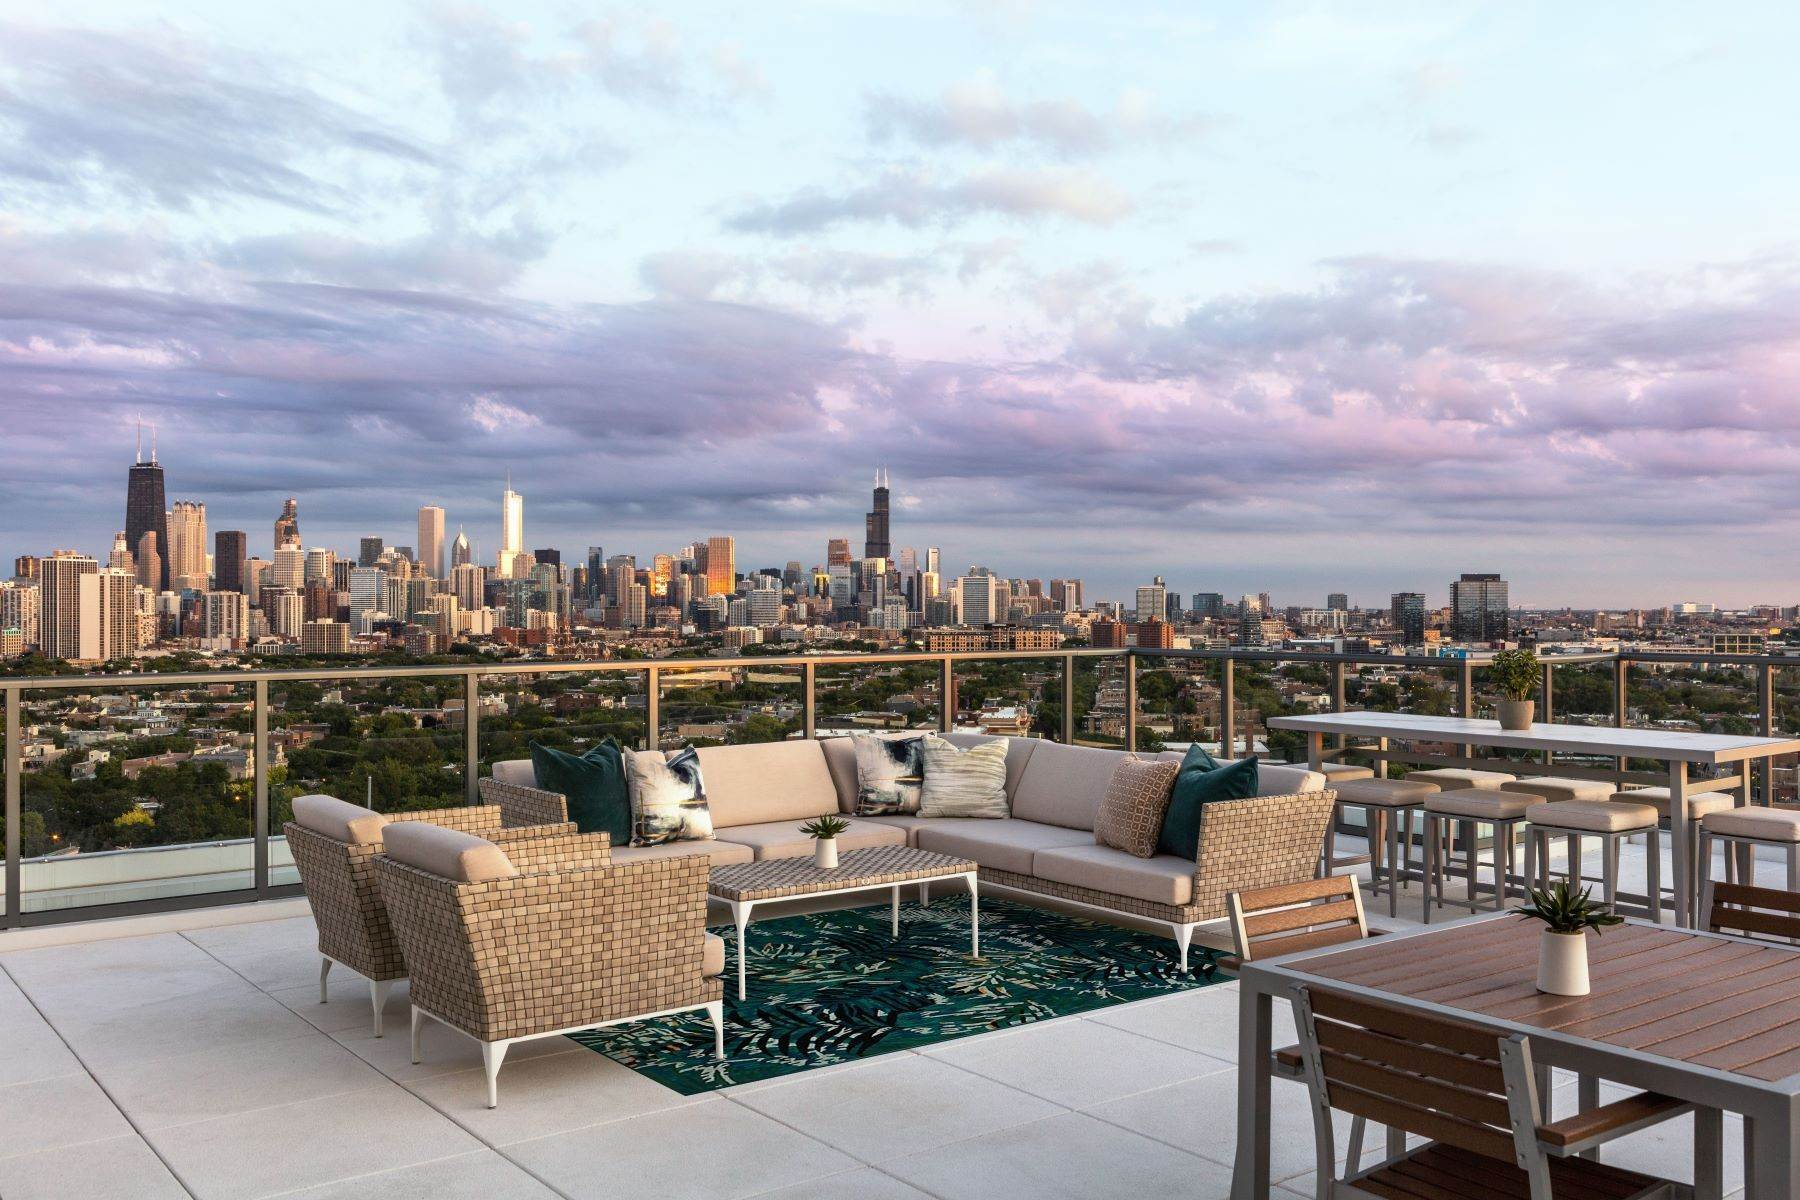 Single Family Homes for Sale at The Orchard Private Residences 2350 N Orchard Street, Unit 604 Chicago, Illinois 60614 United States